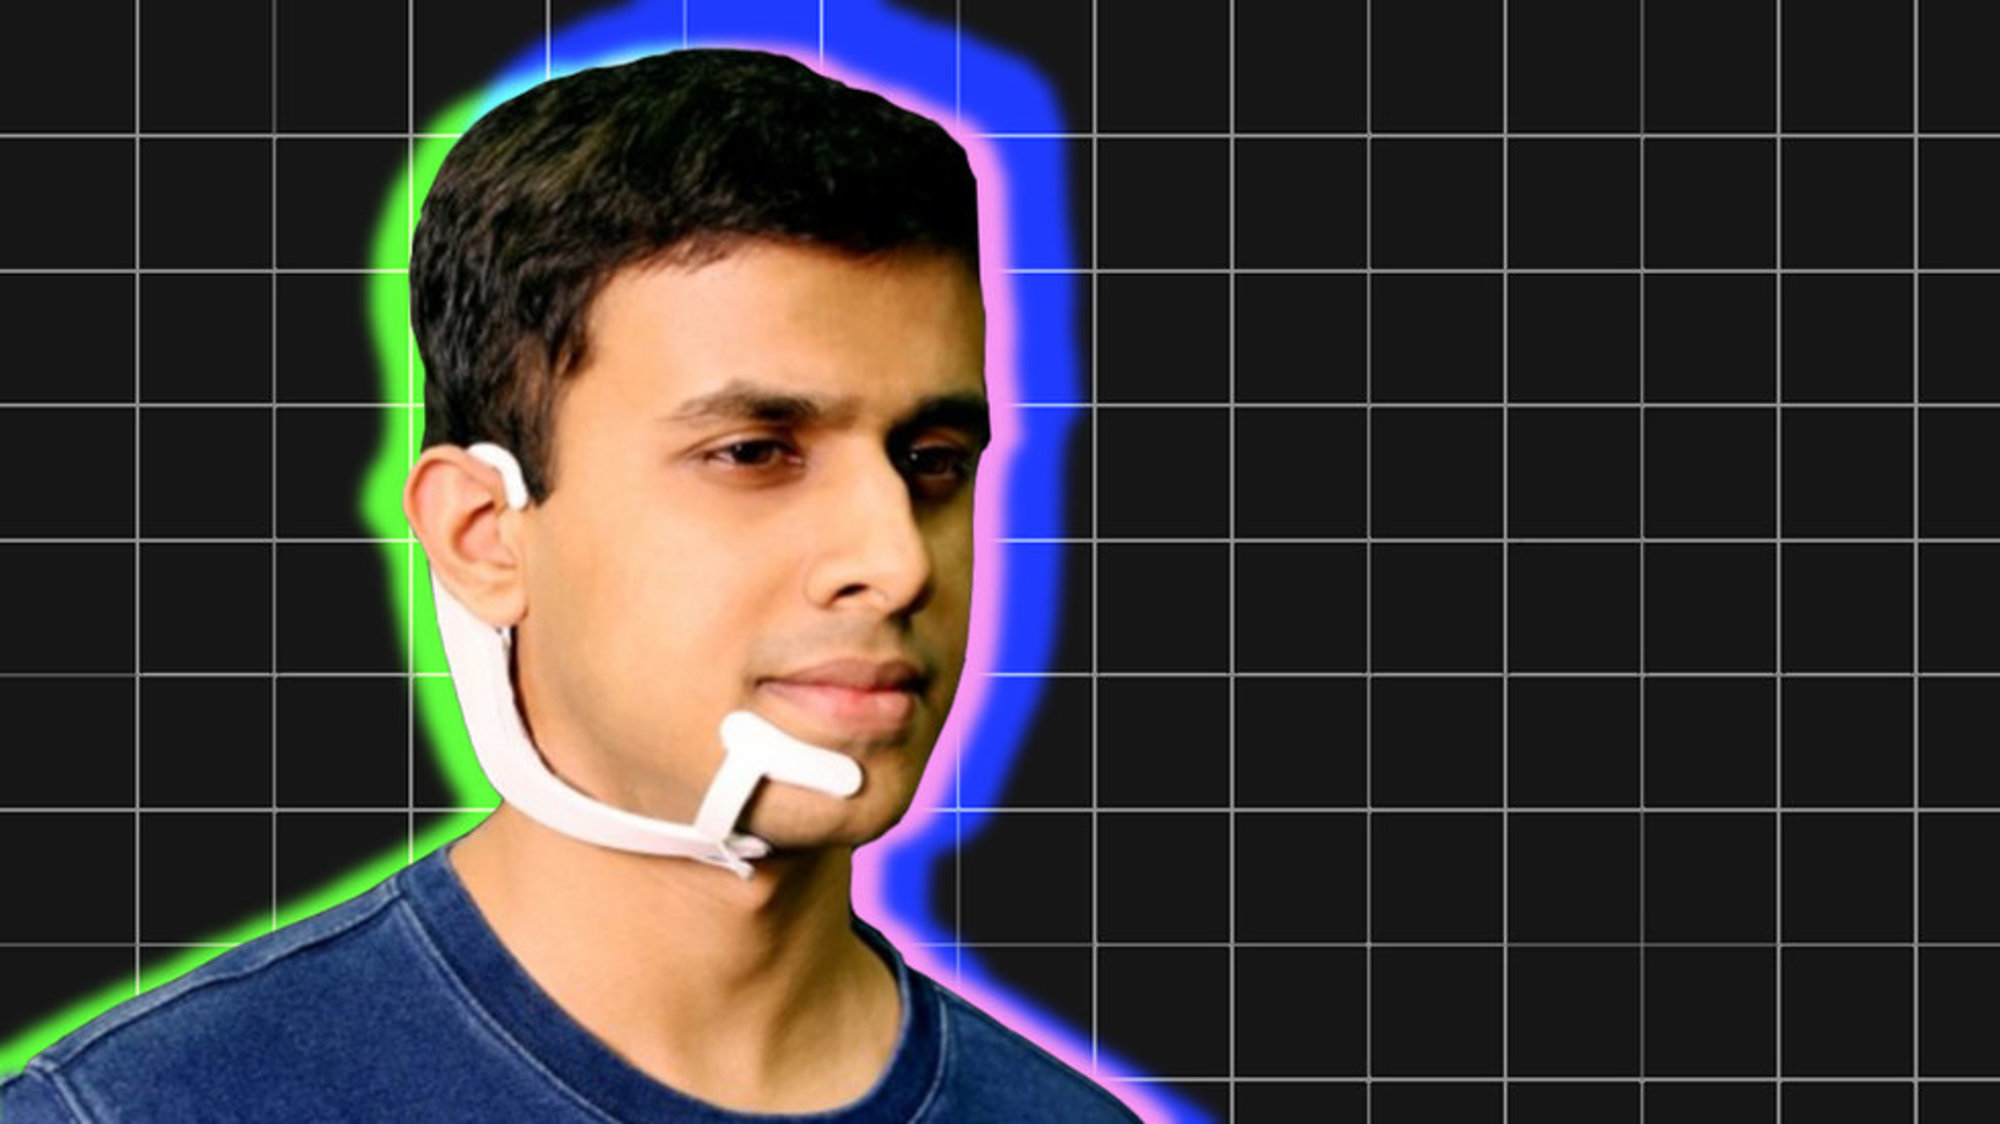 MIT has created a device that listens to the voice inside your head